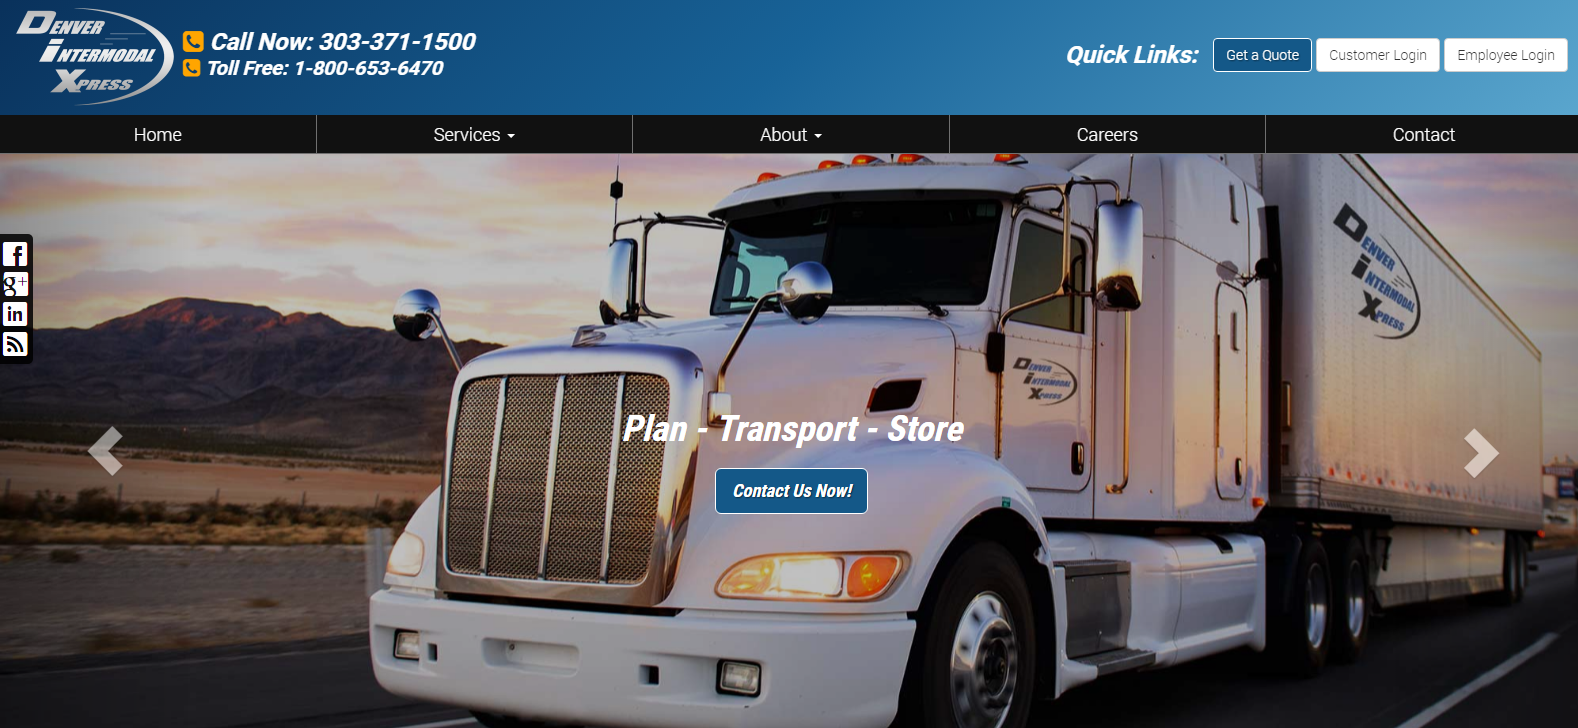 New Website Launched: Denver Intermodal Xpress